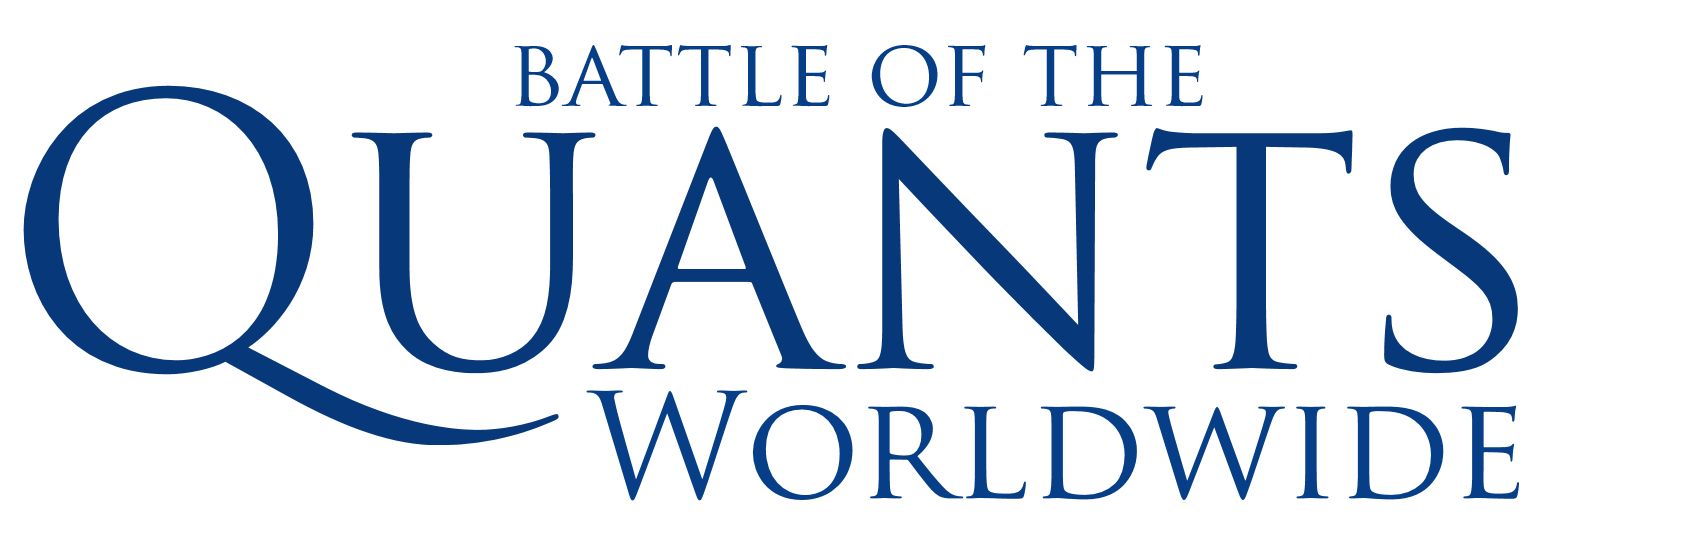 Battle of the Quants Worldwide